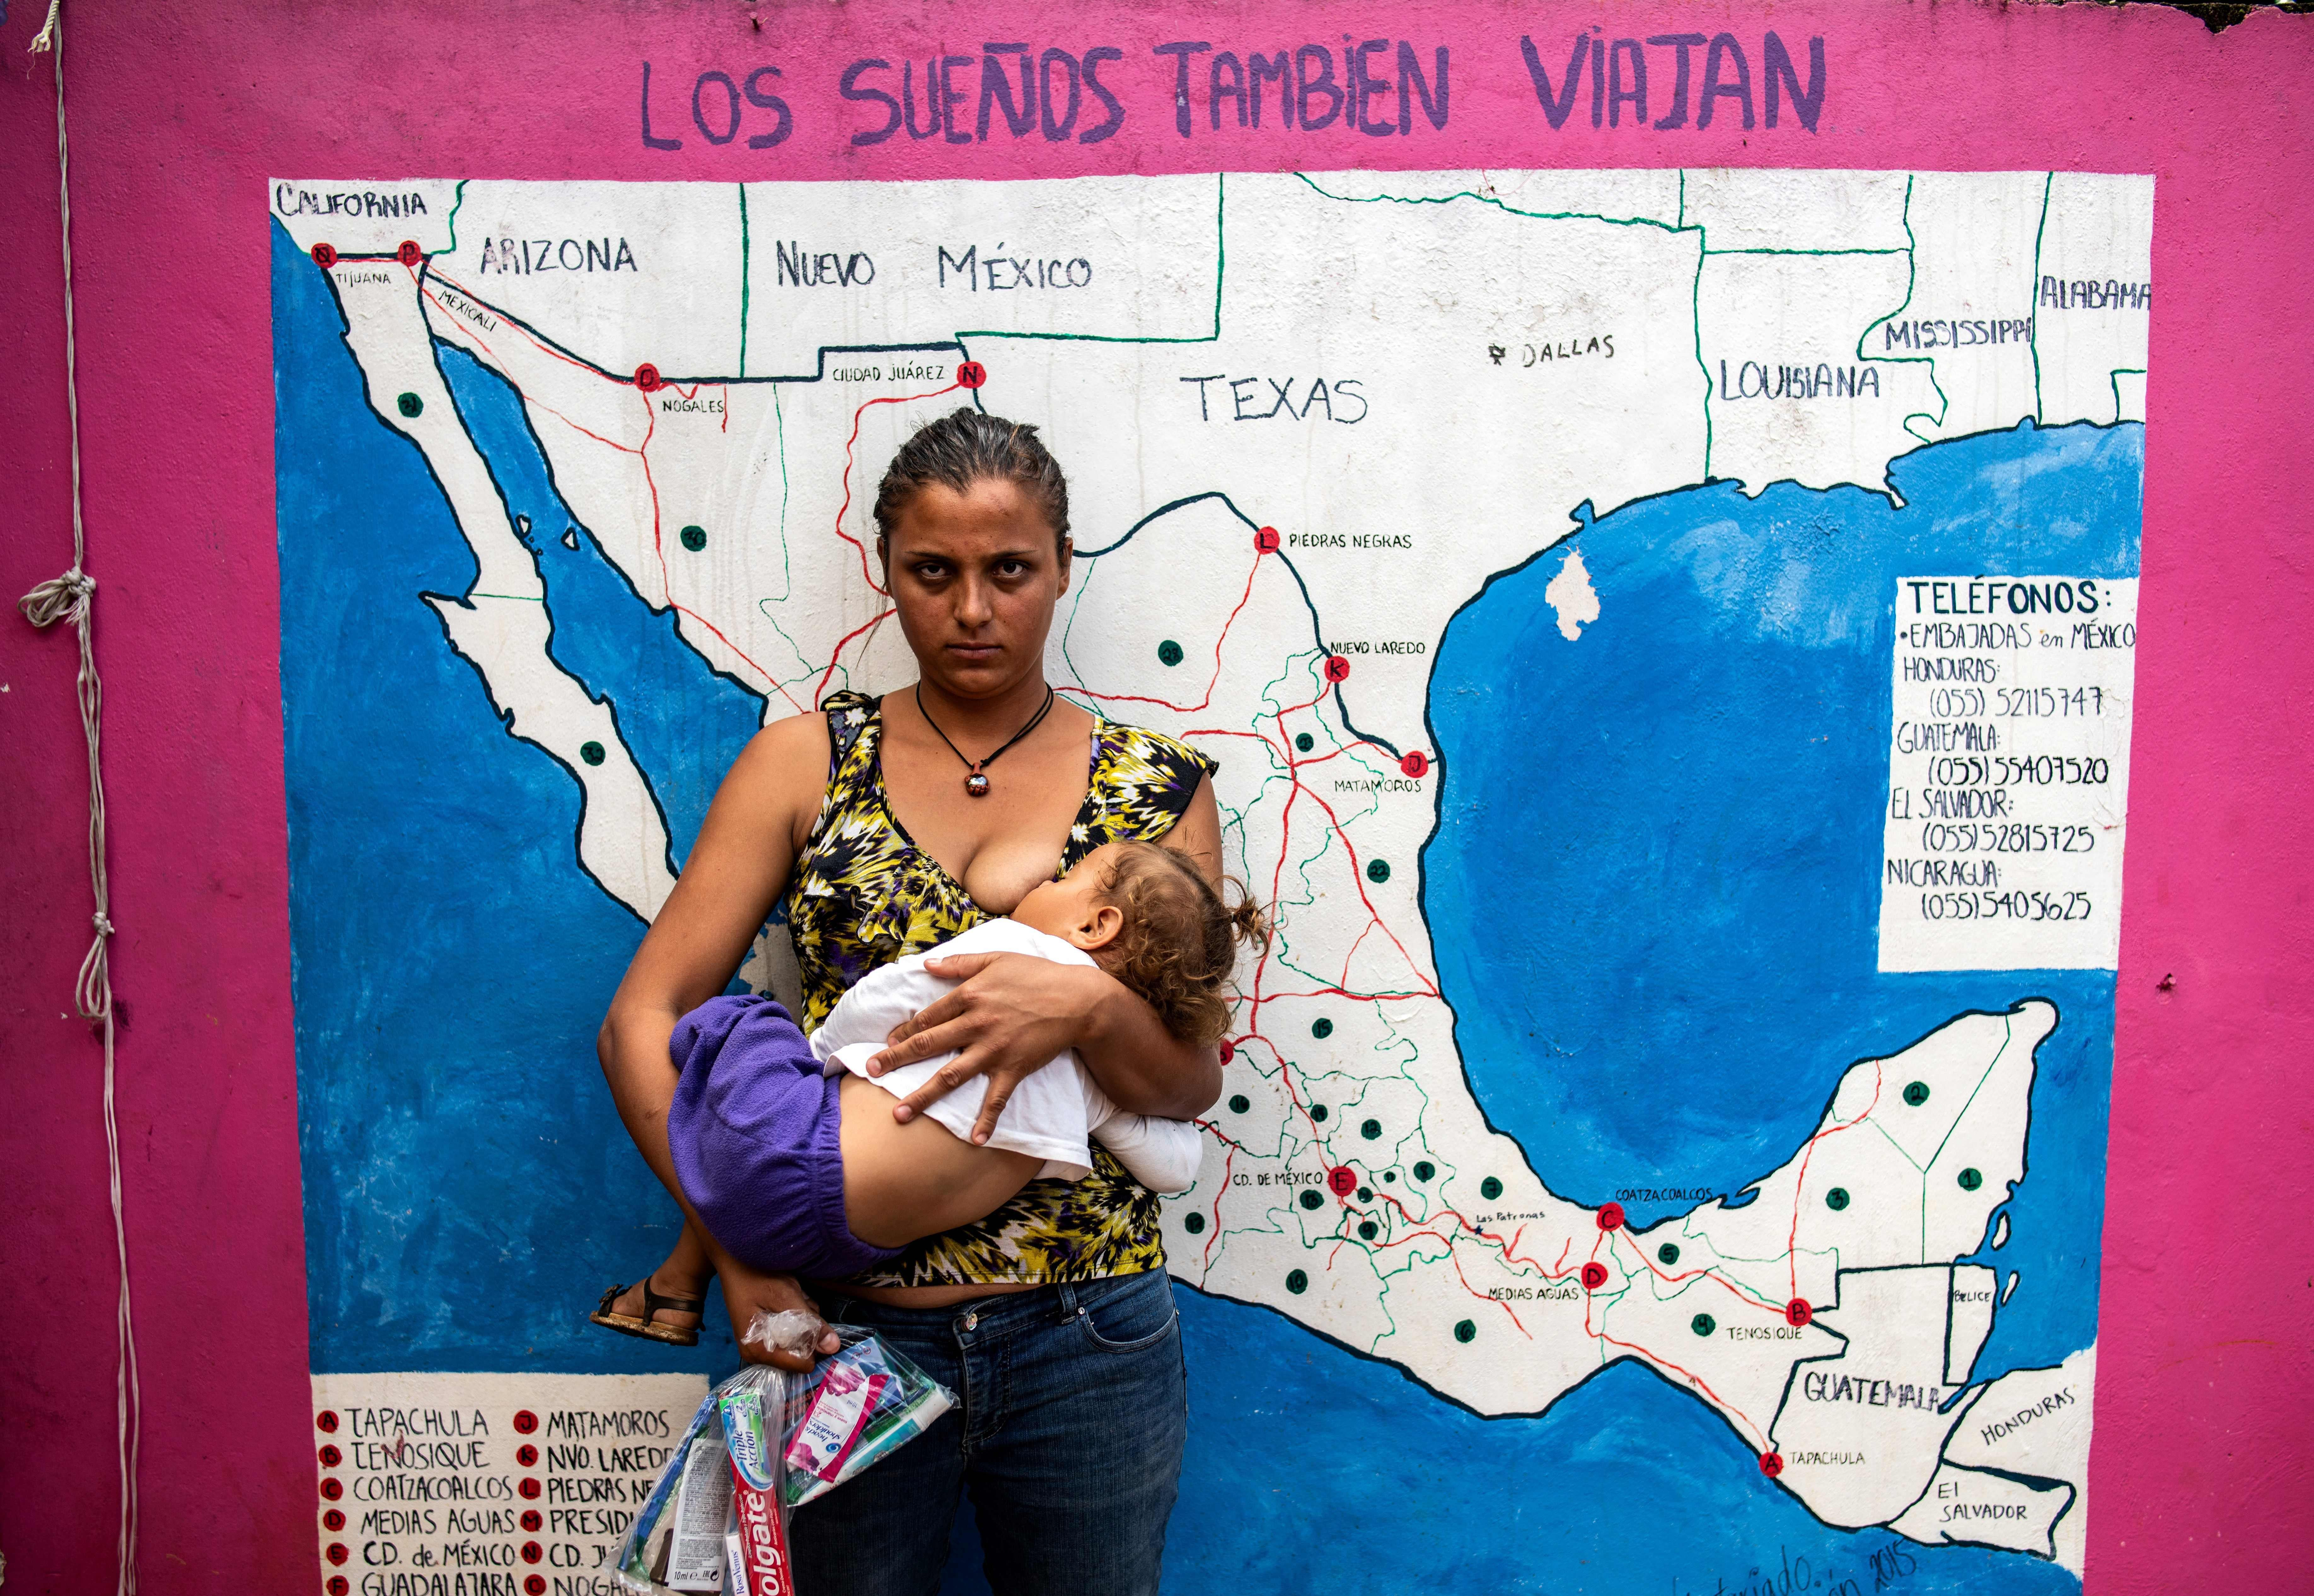 A migrant woman nurses her baby in front of a map of Mexico and the U.S. at a shelter for migrants without documents in Las Patronas town, Veracruz State, Mexico on August 10, 2018.